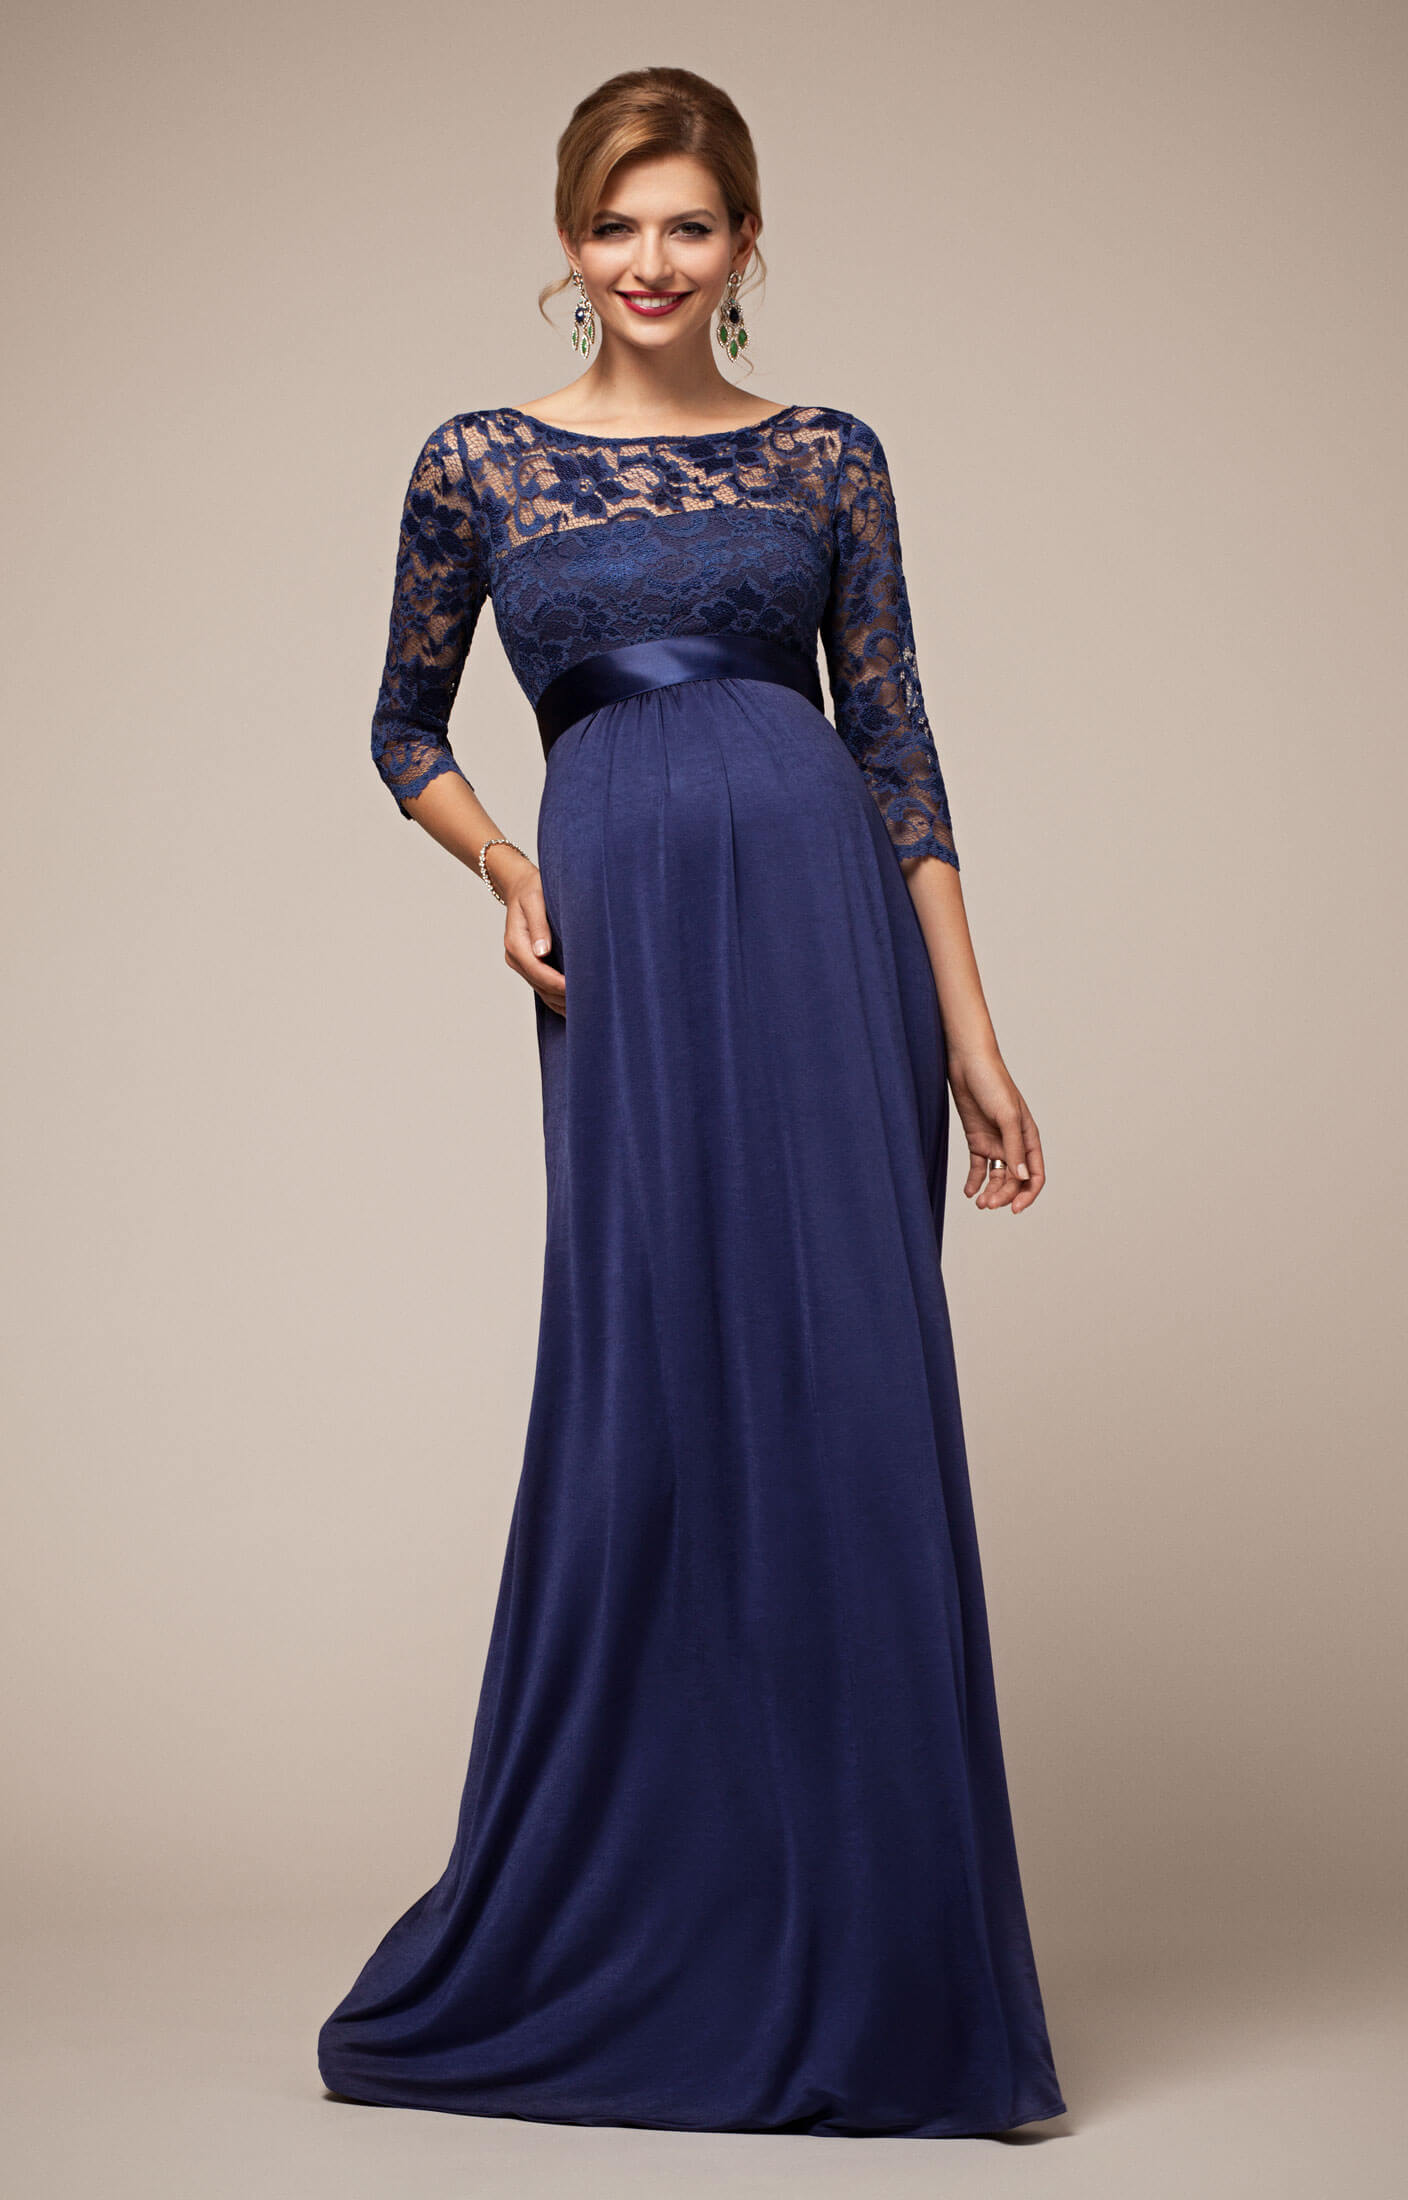 Shop for and buy maternity evening dresses online at Macy's. Find maternity evening dresses at Macy's.